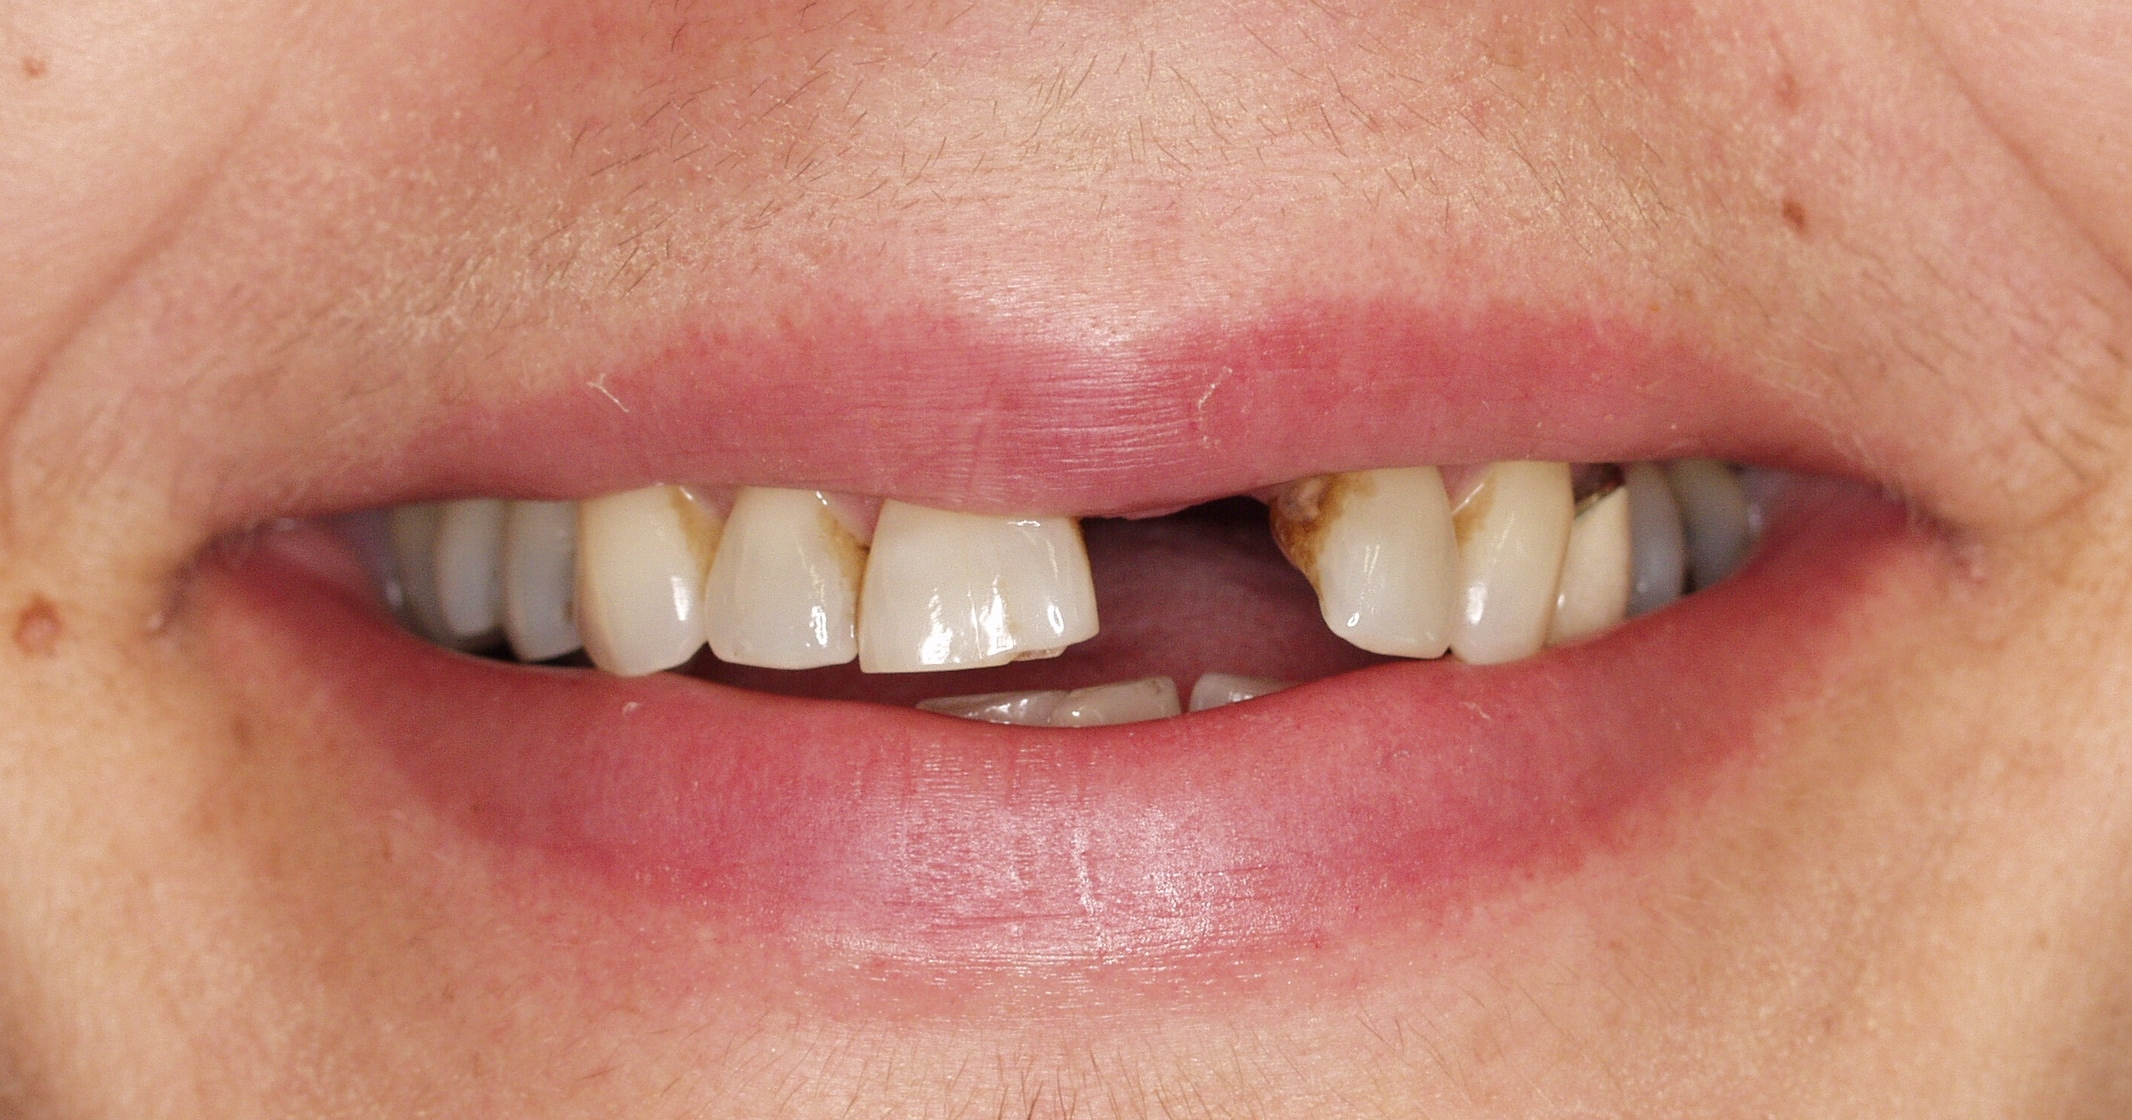 Patient missing one tooth and unhappy with wearing a denture